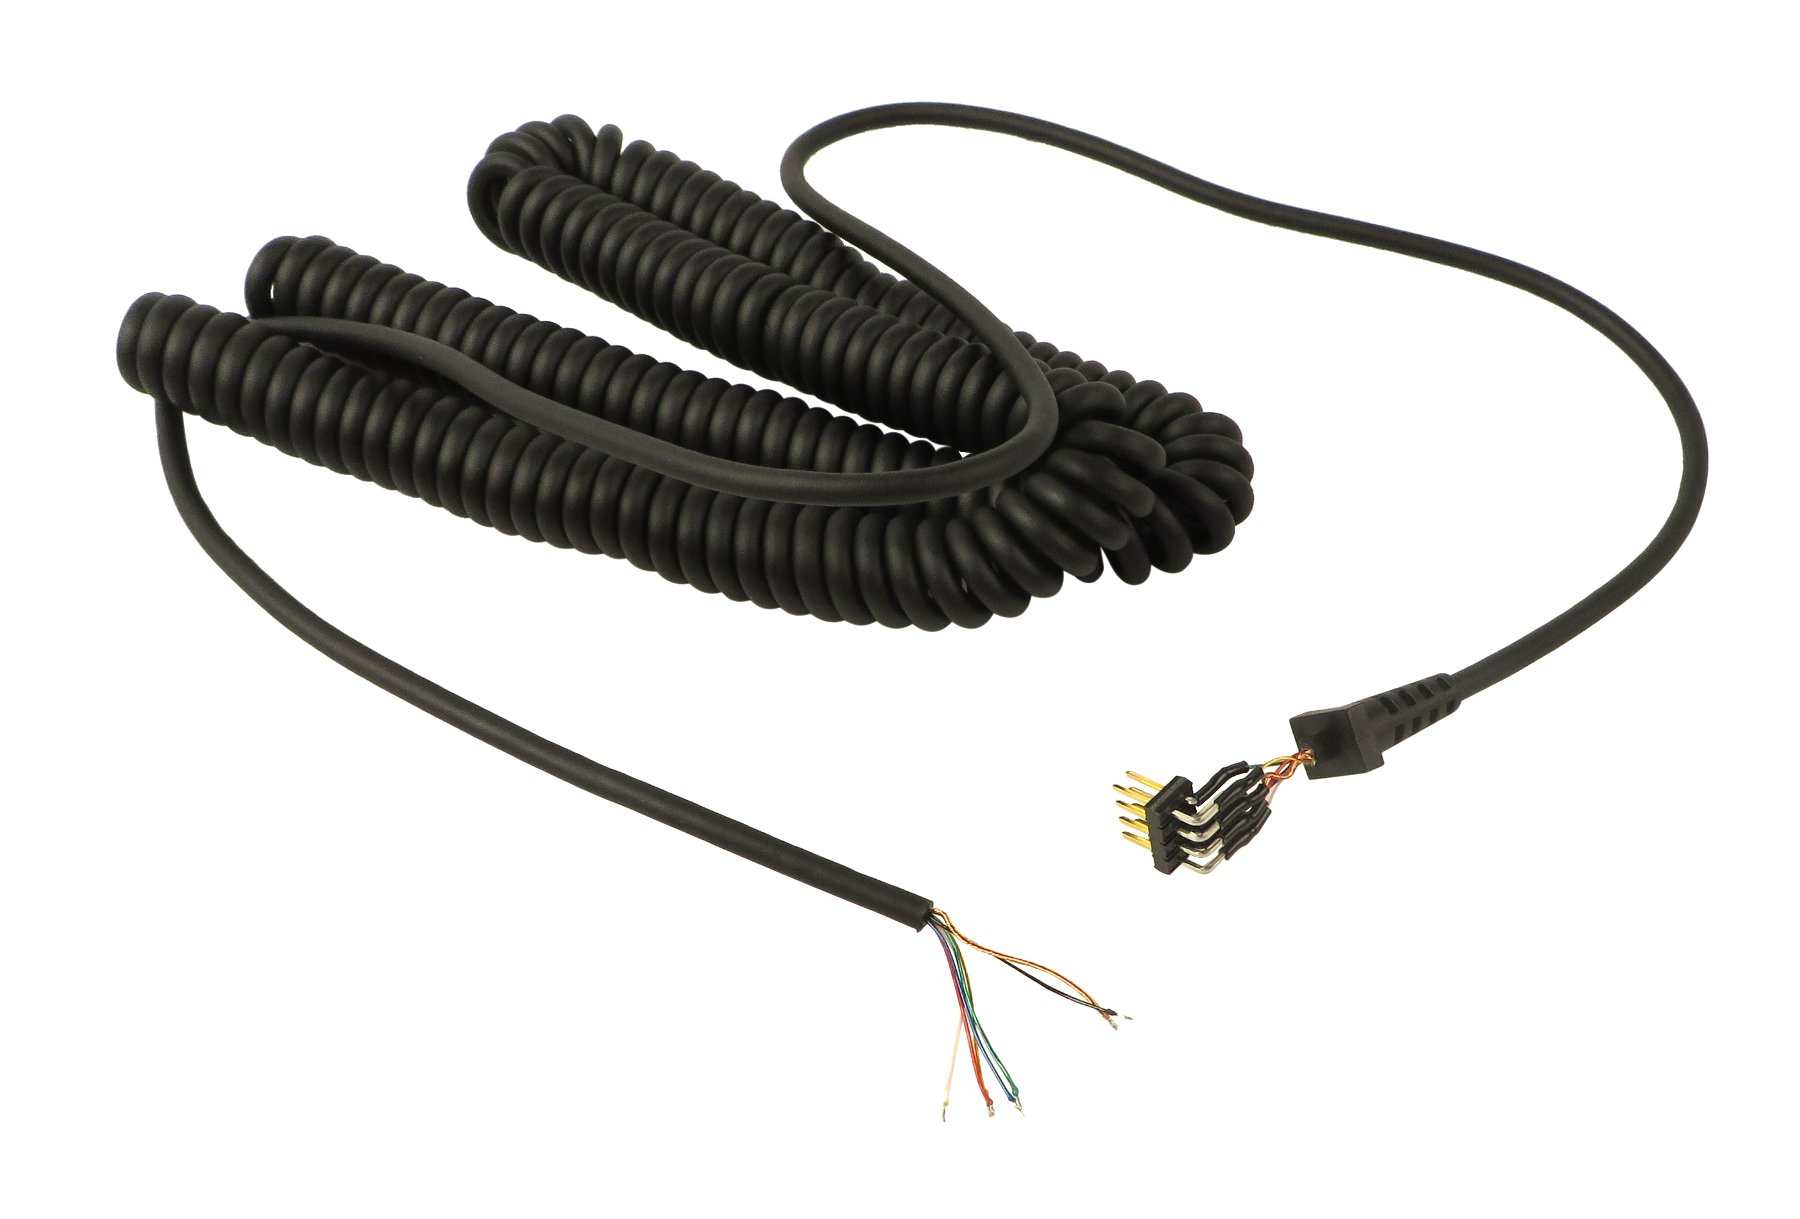 Main Cable for HMD 280